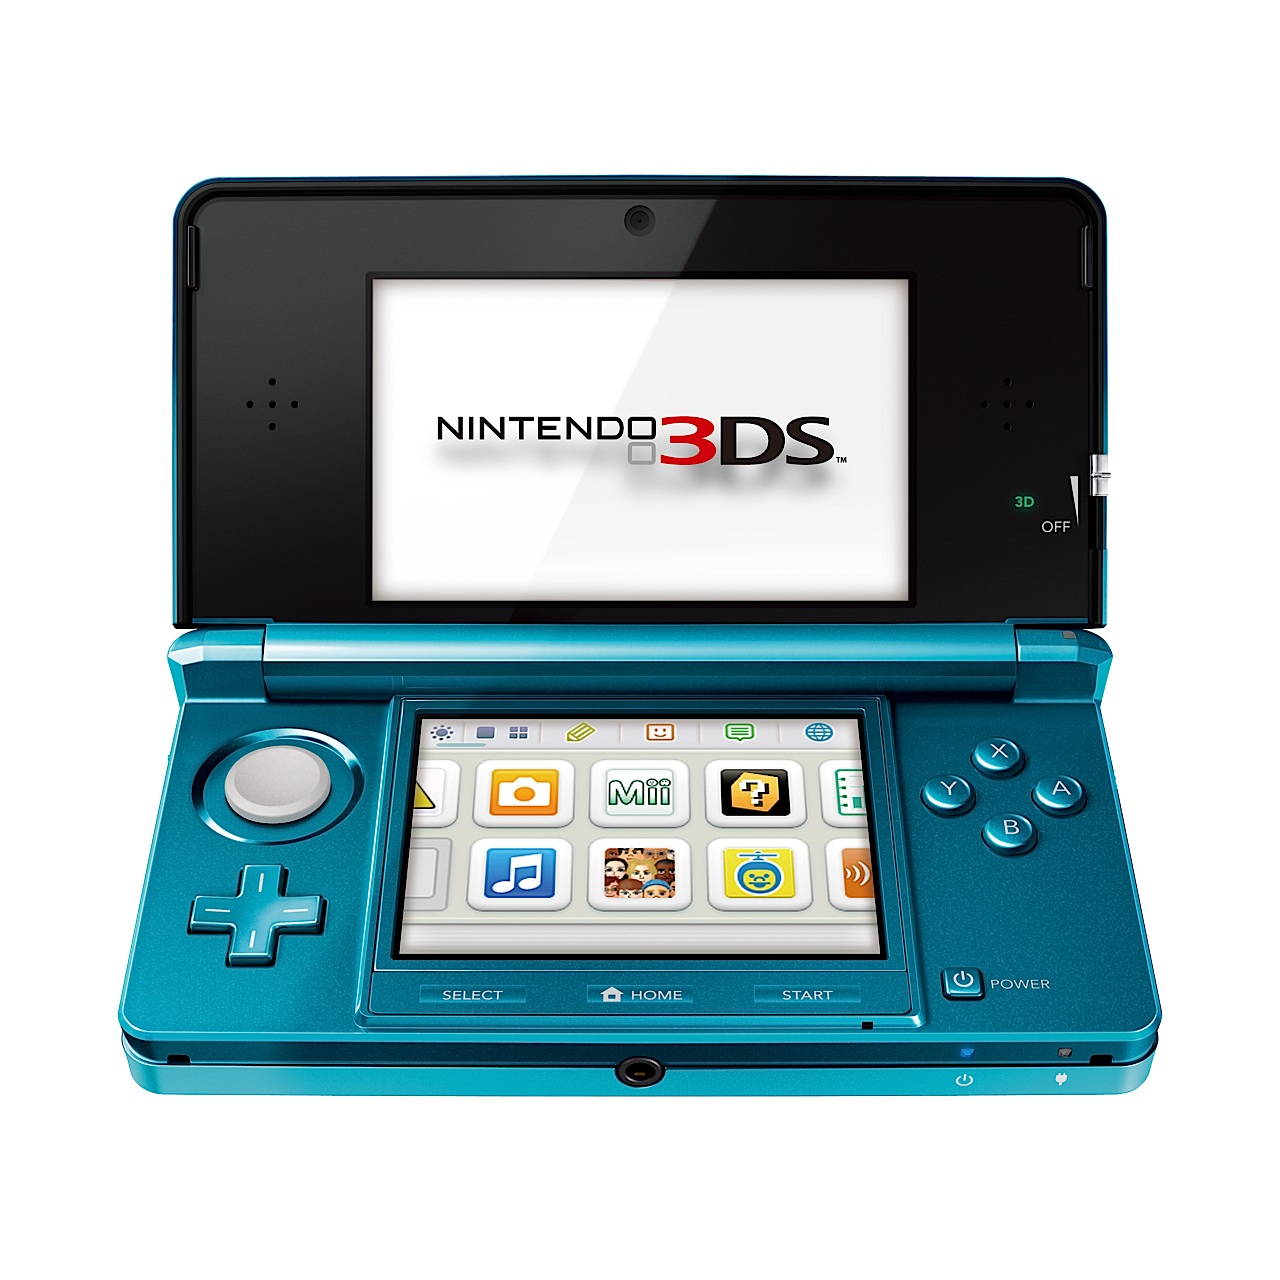 3DS Looks a Bit Healthier at 19 Million Units Sold